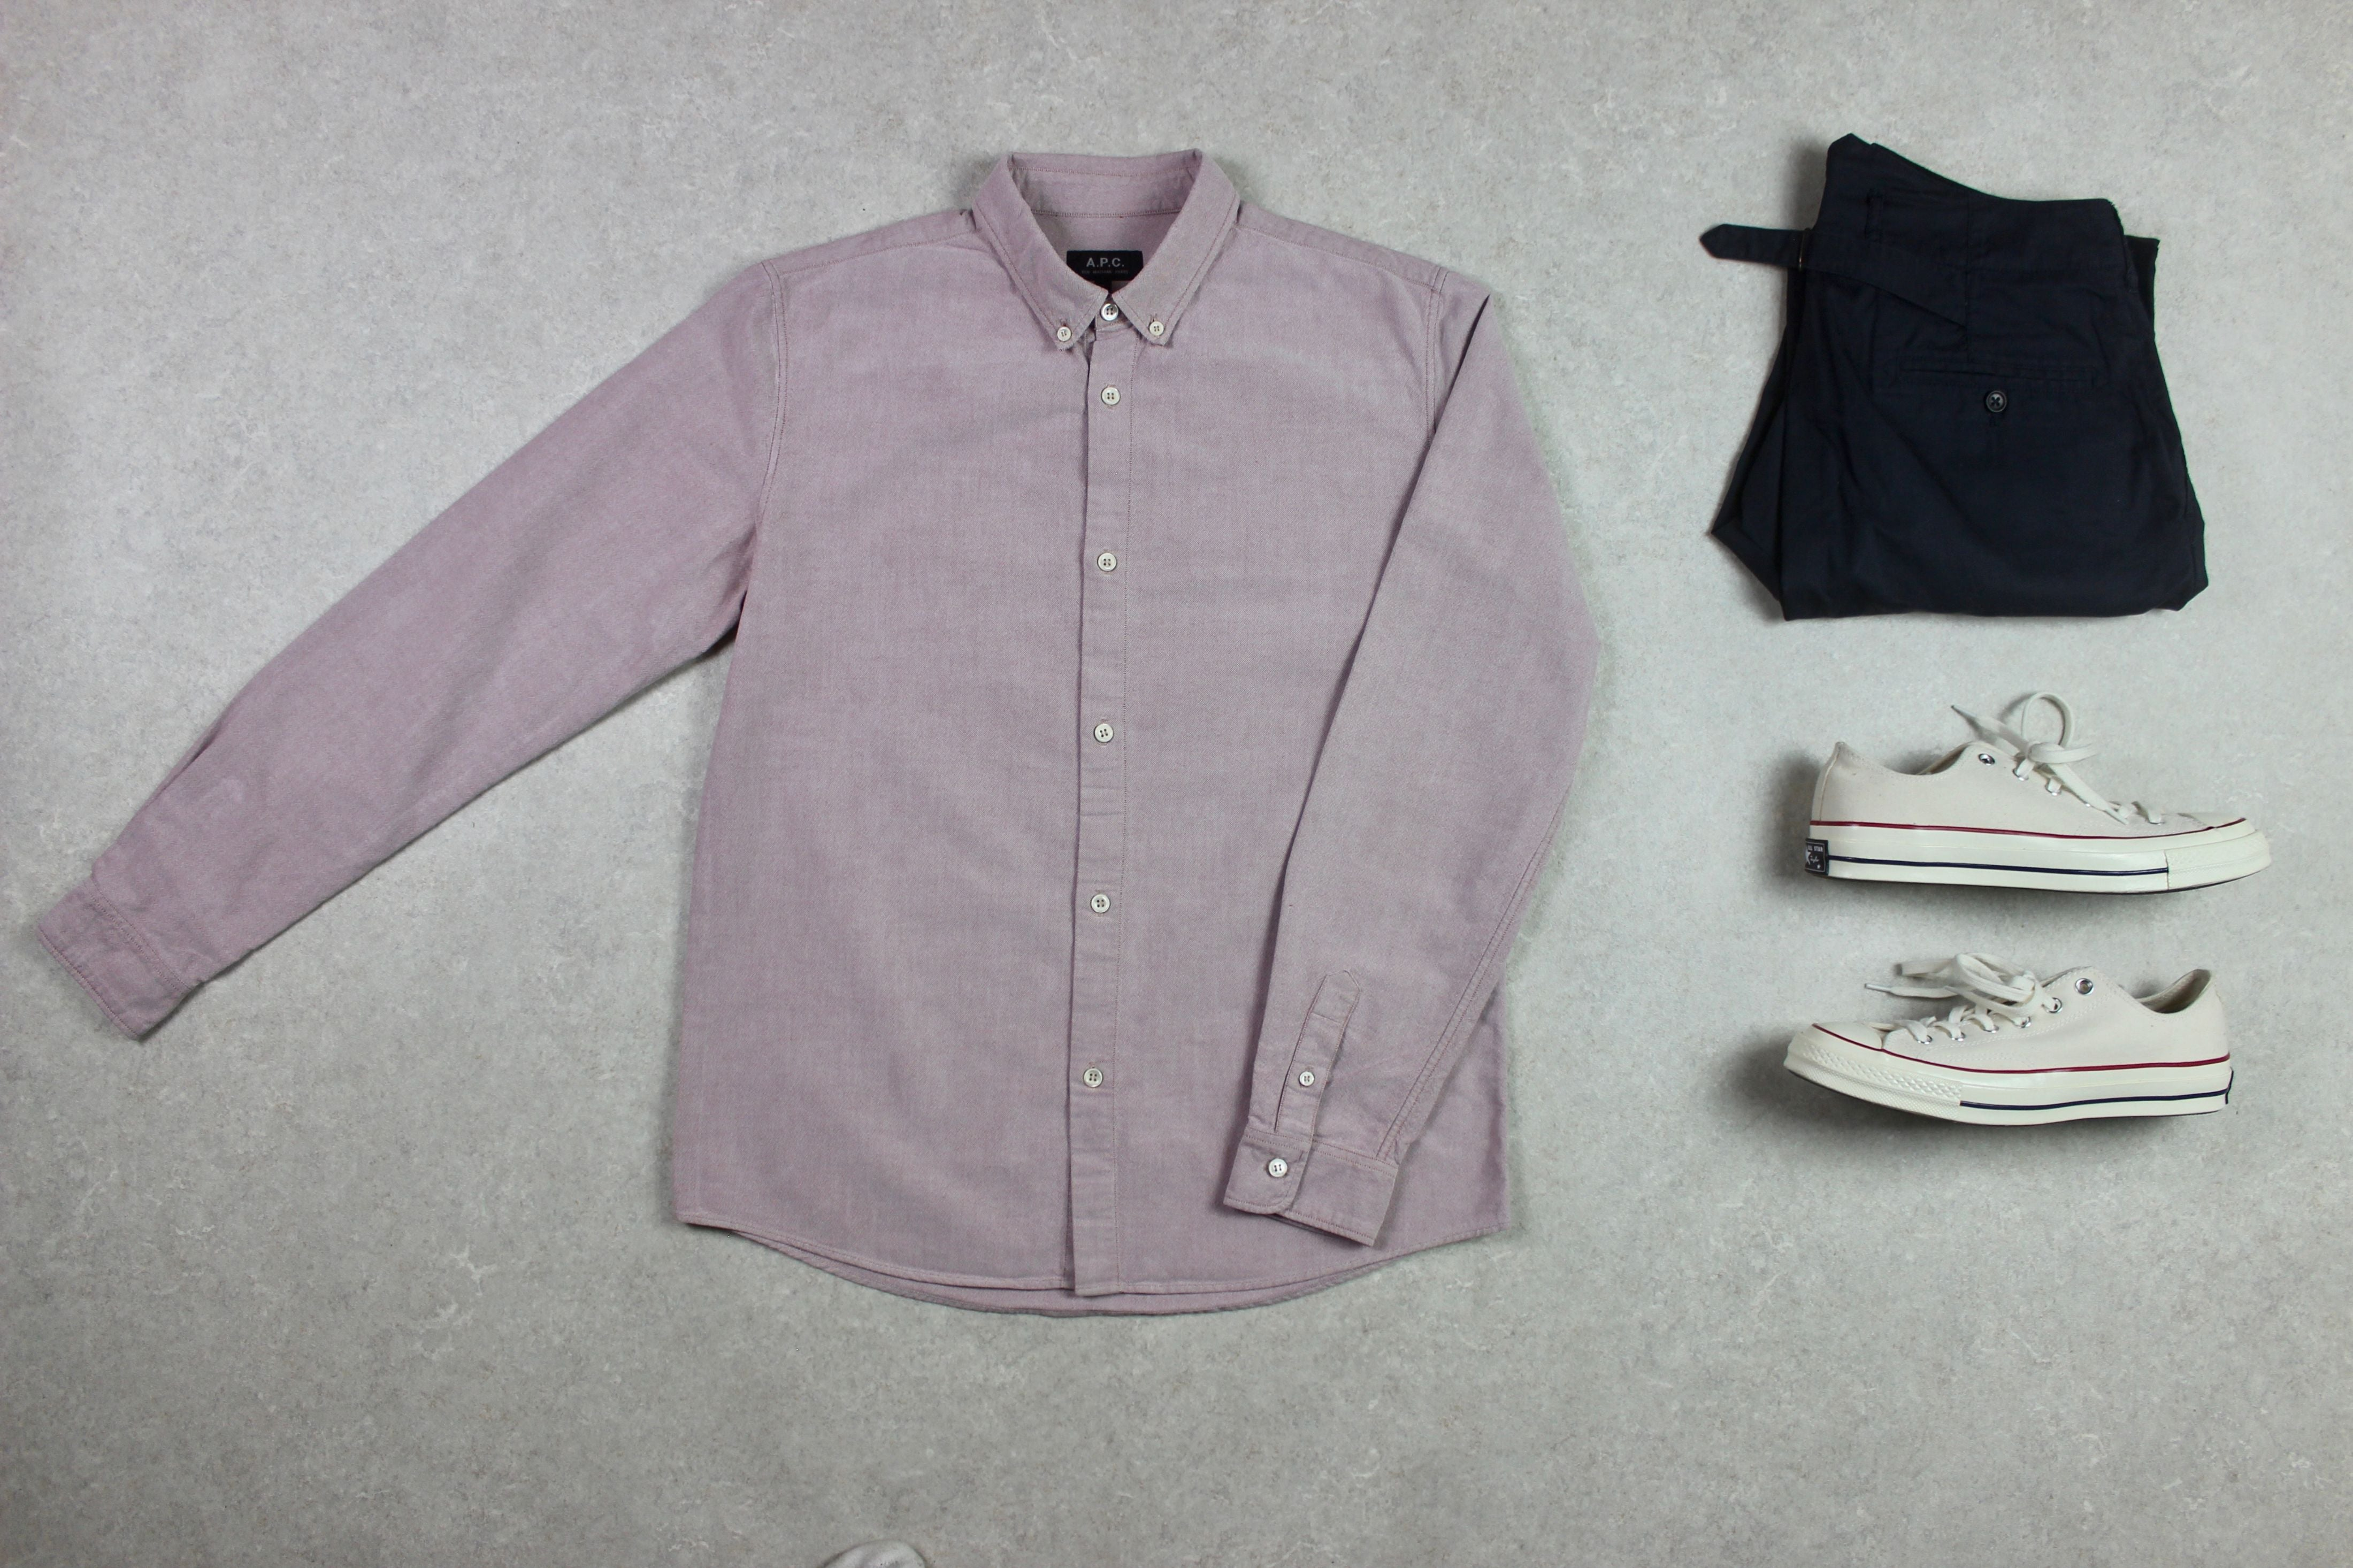 A.P.C. - Shirt - Pink - Small